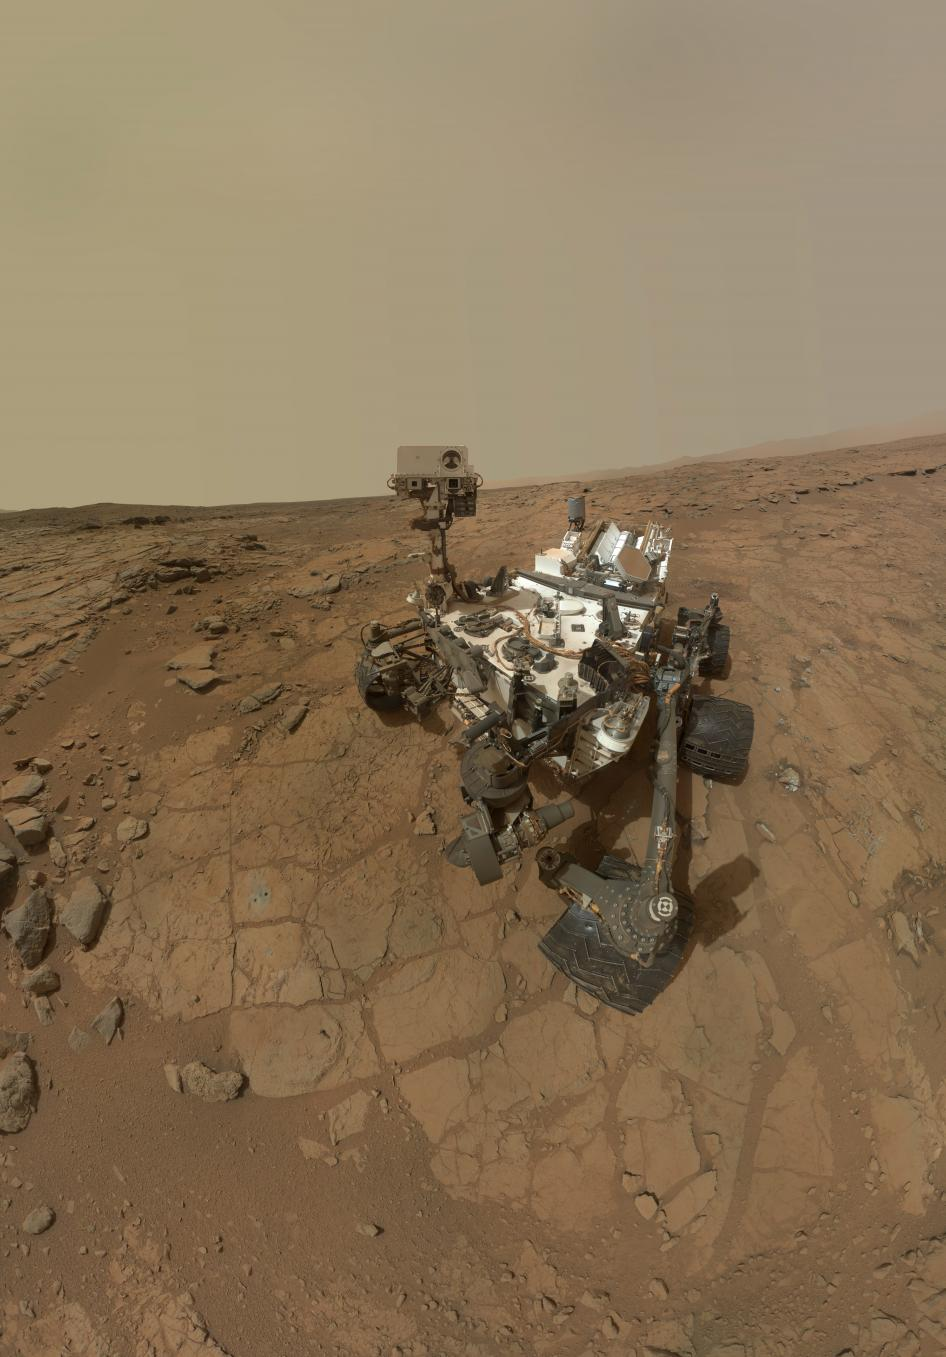 A self-portrait composite image of Curiosity. Credit: NASA/JPL-Caltech/MSSS